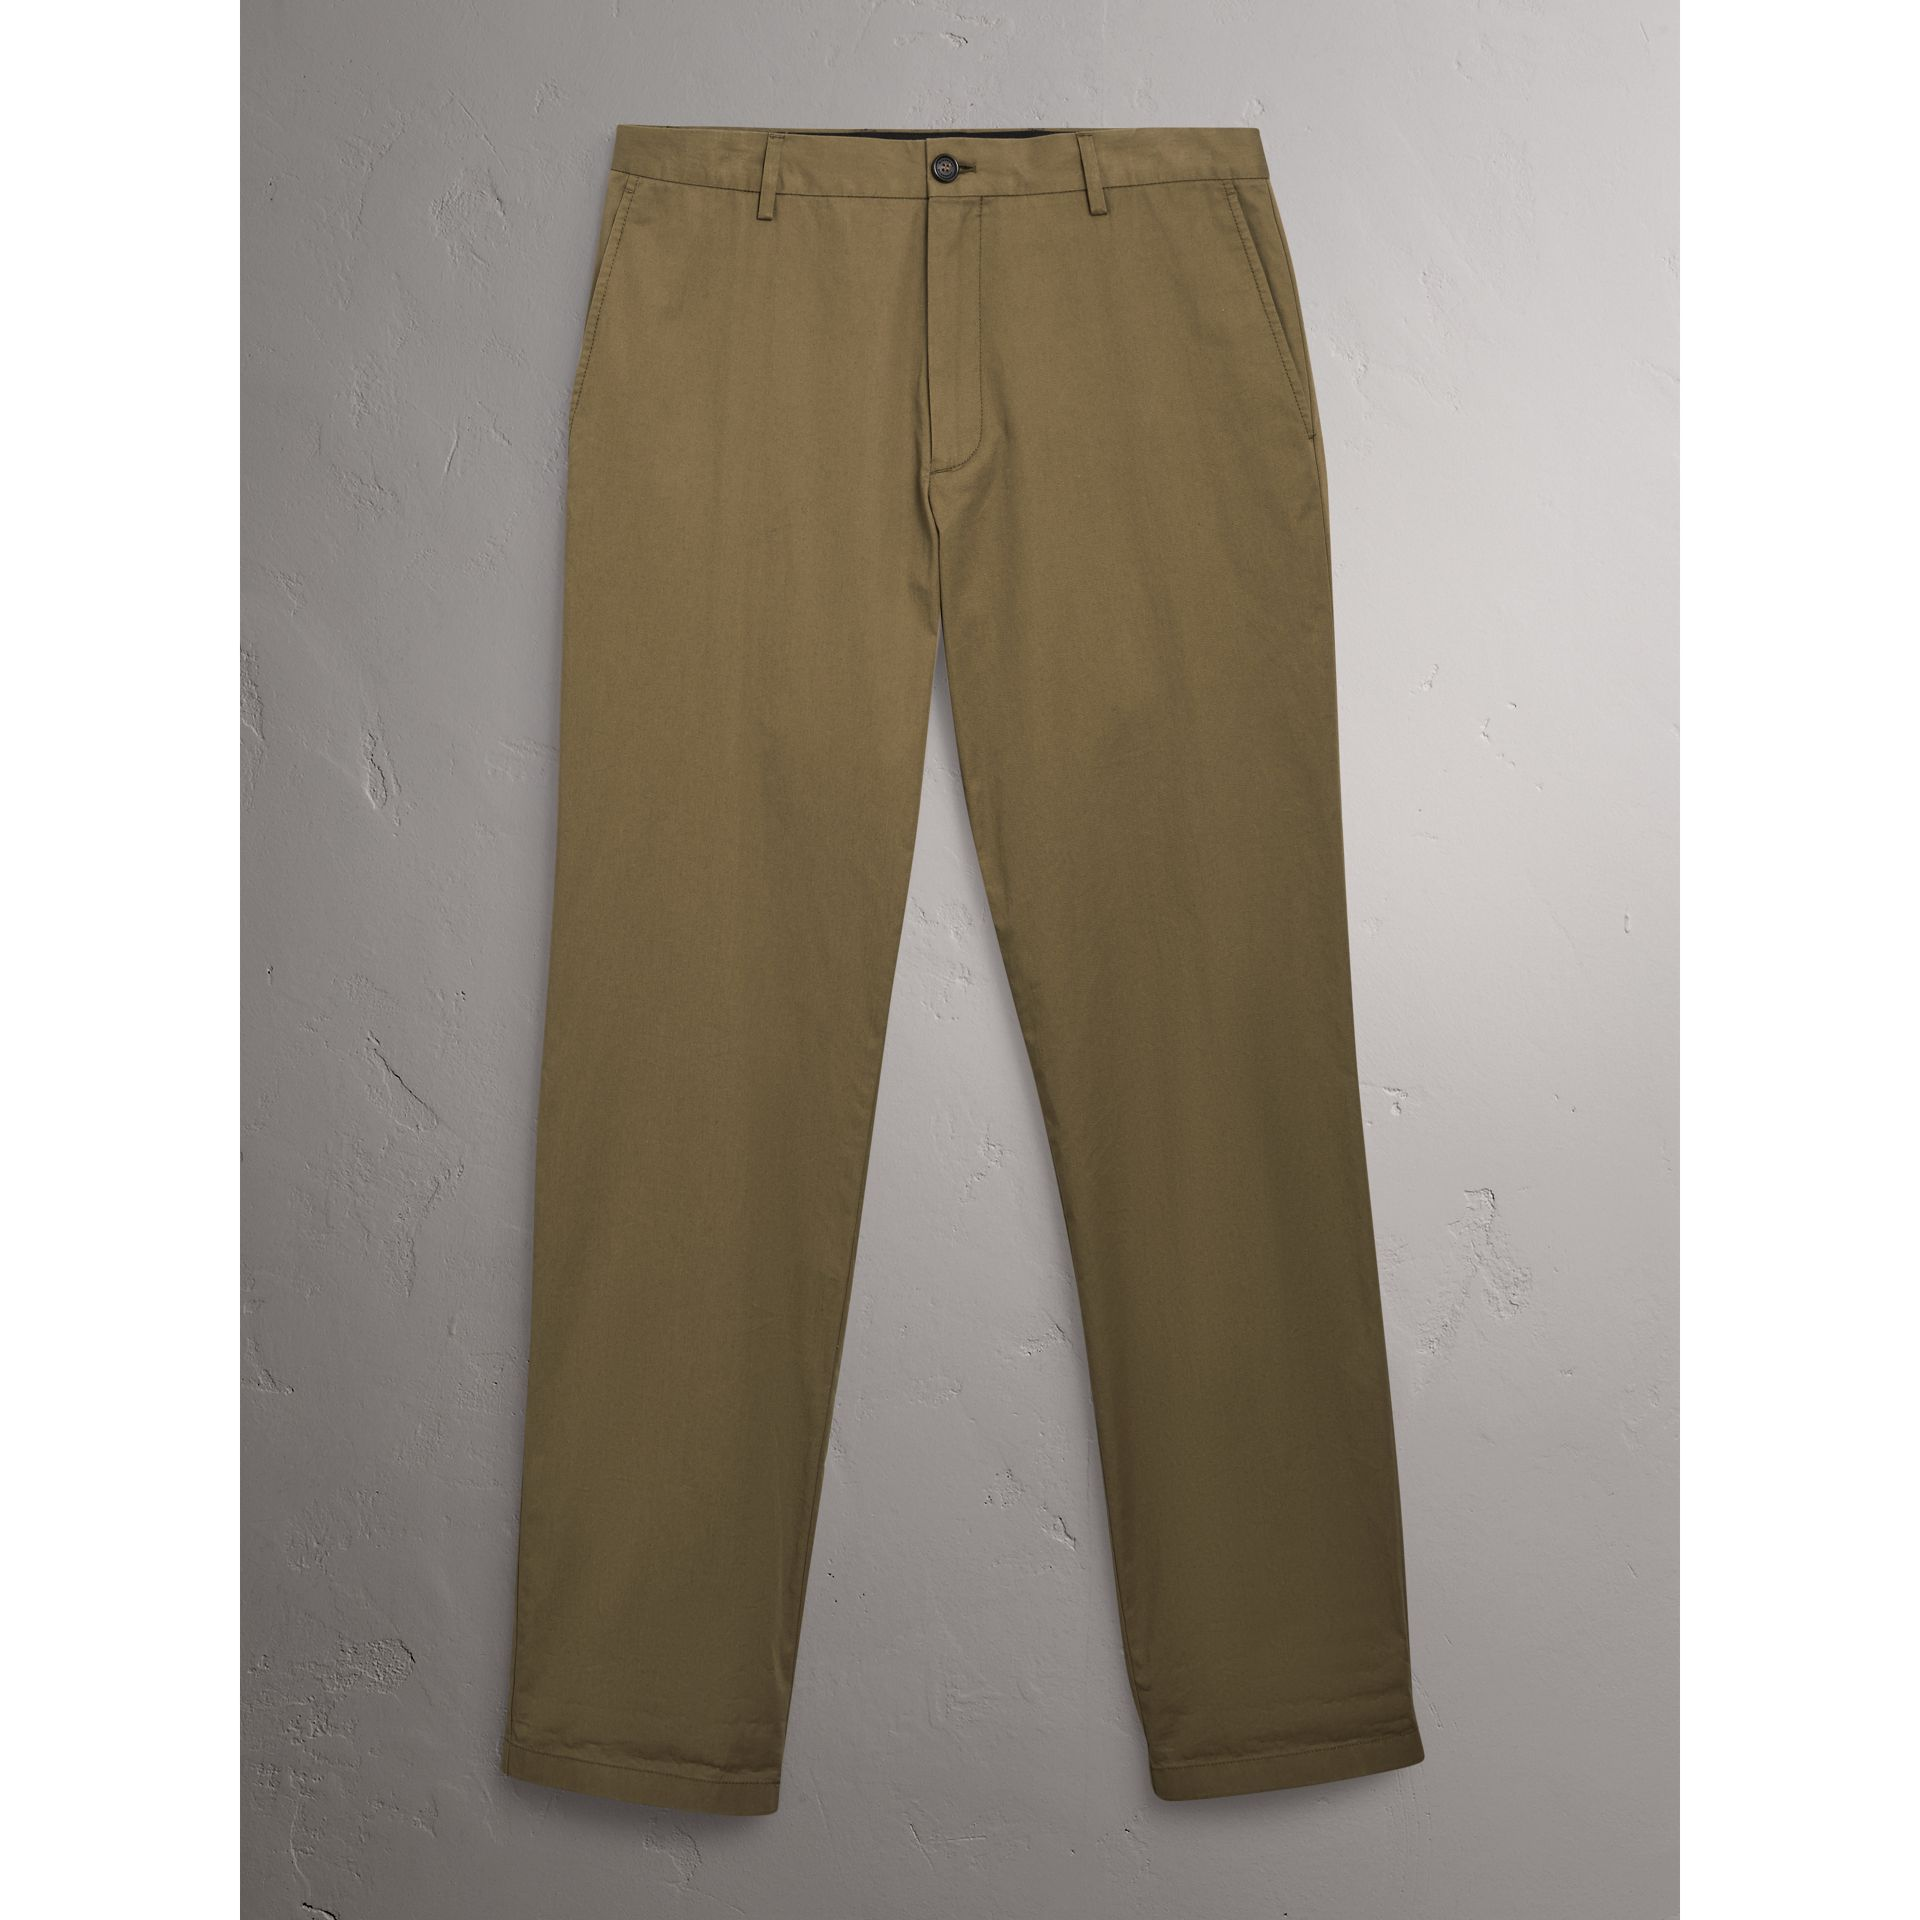 Cotton Twill Chinos in Olive Green - Men | Burberry Singapore - gallery image 2